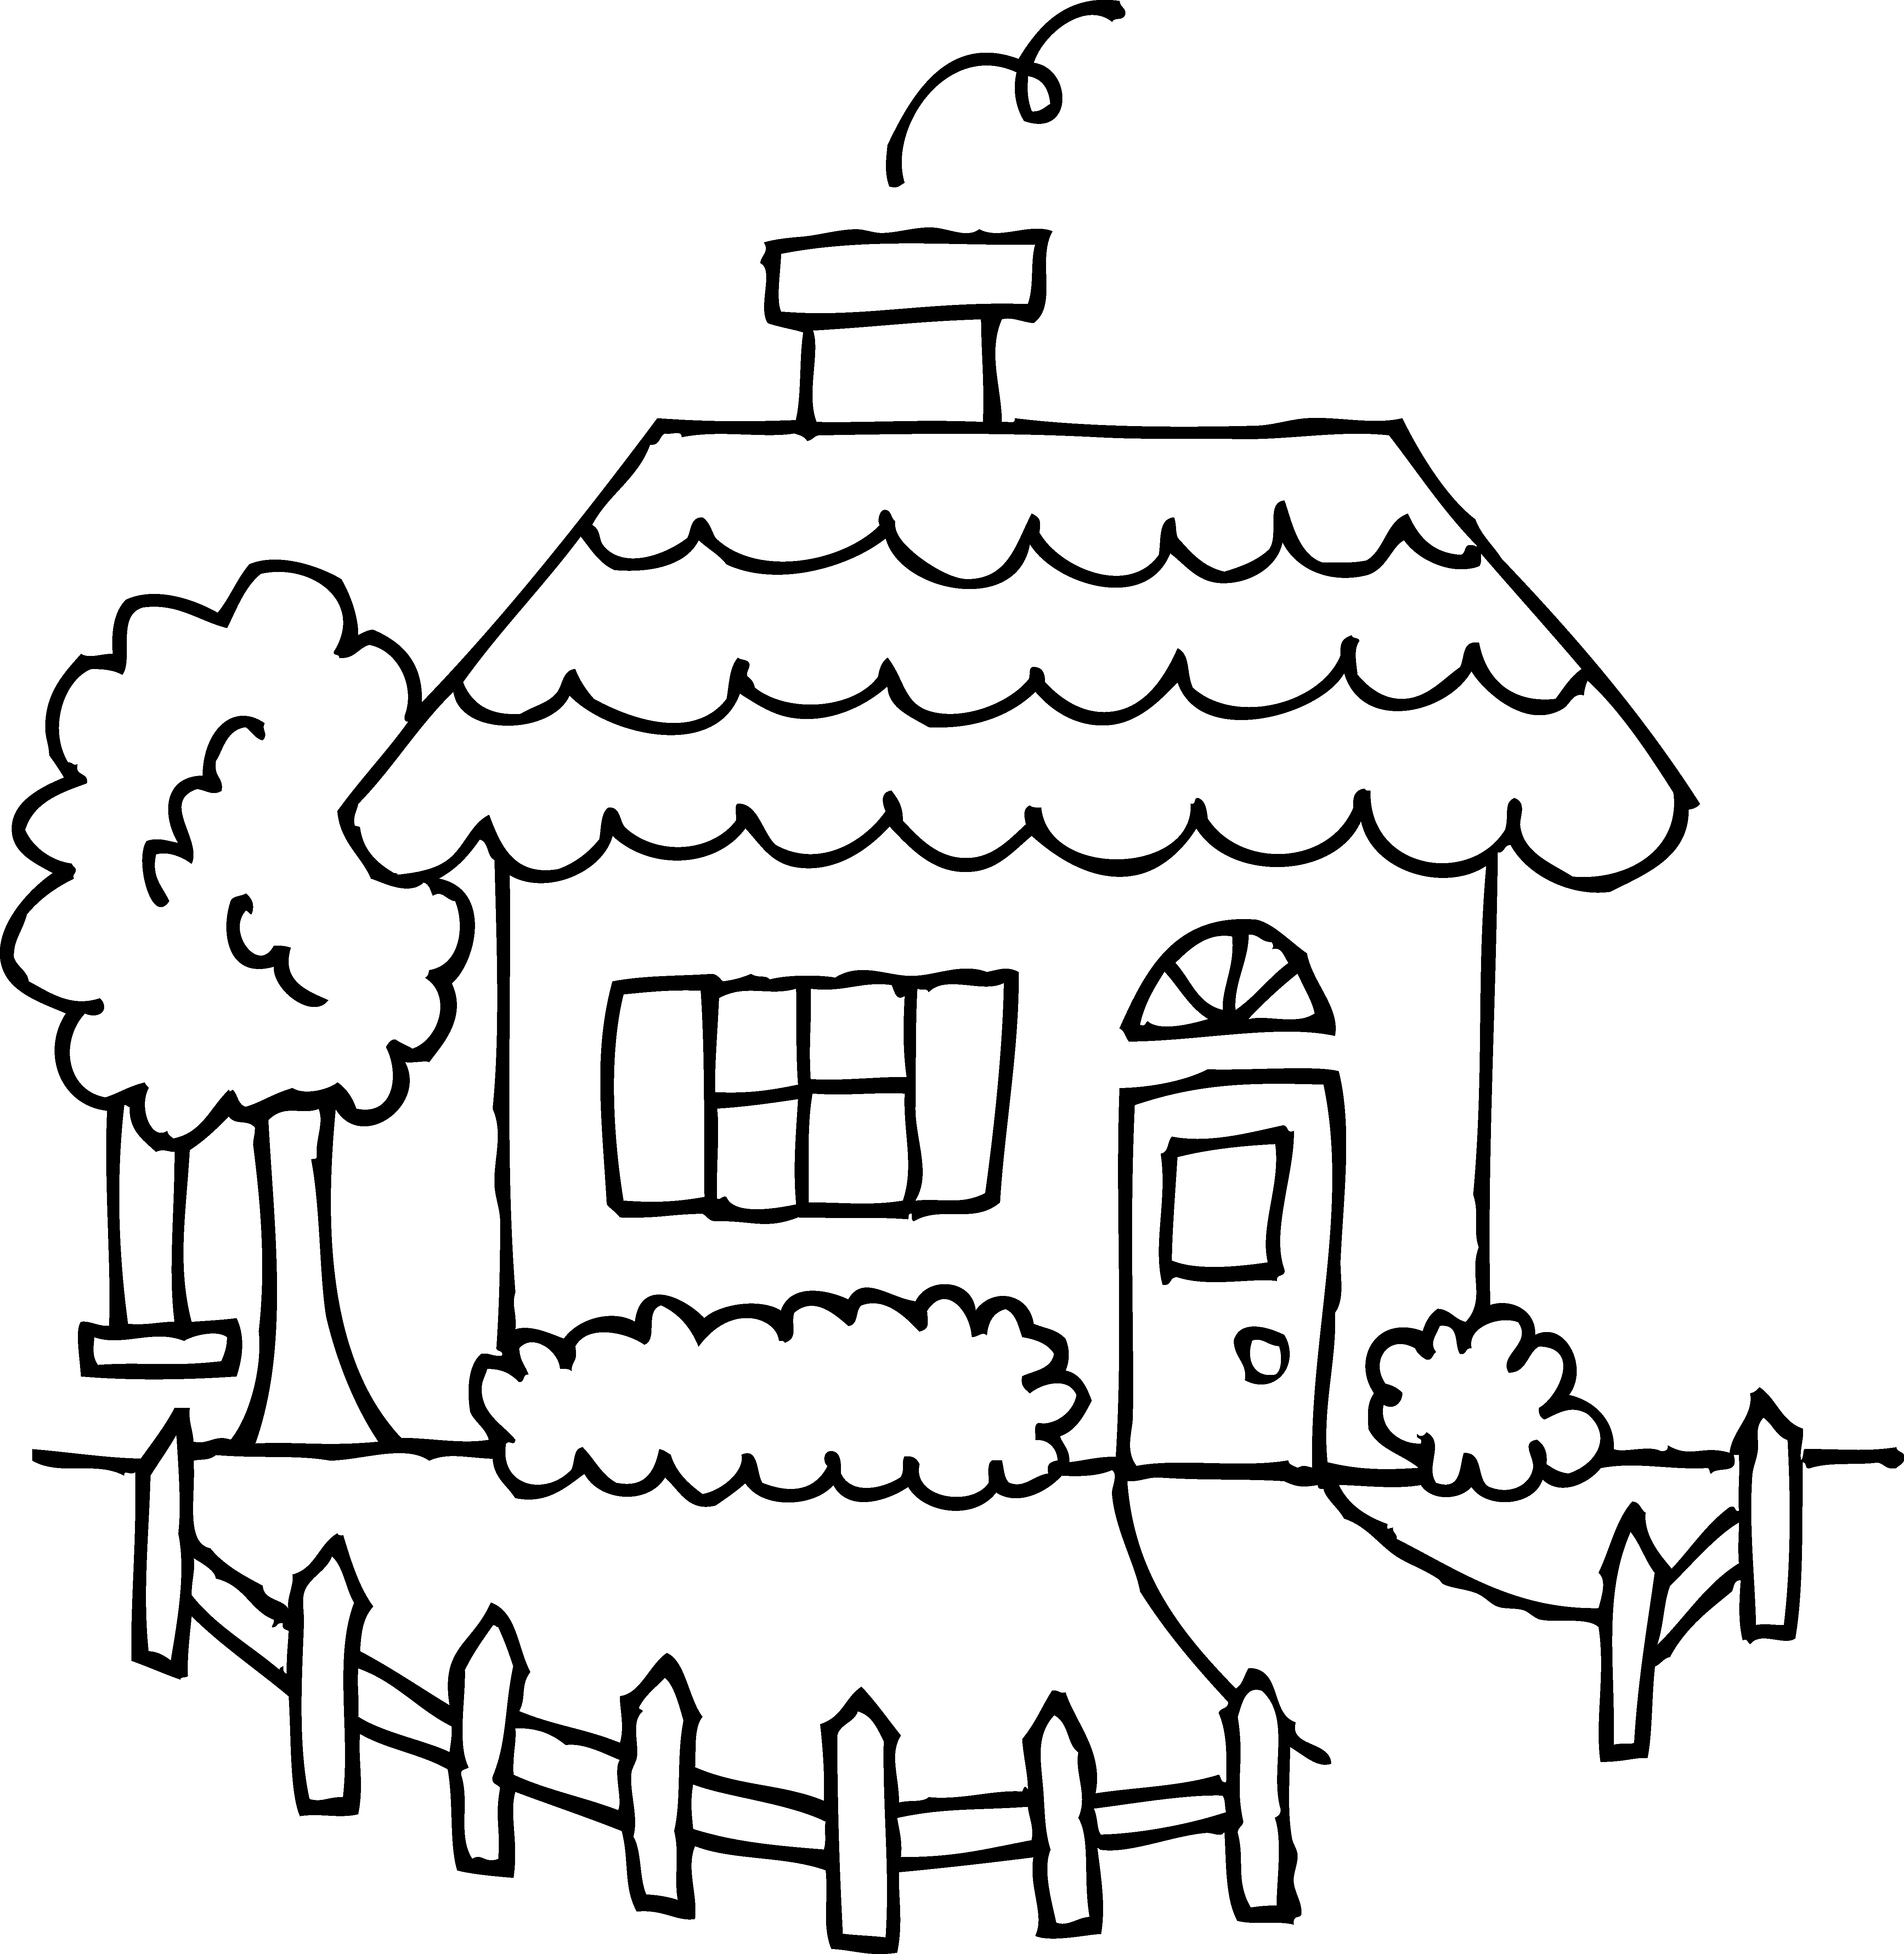 Inside house clipart black and white clip art royalty free library House clipart coloring sheet - ClipartFest clip art royalty free library